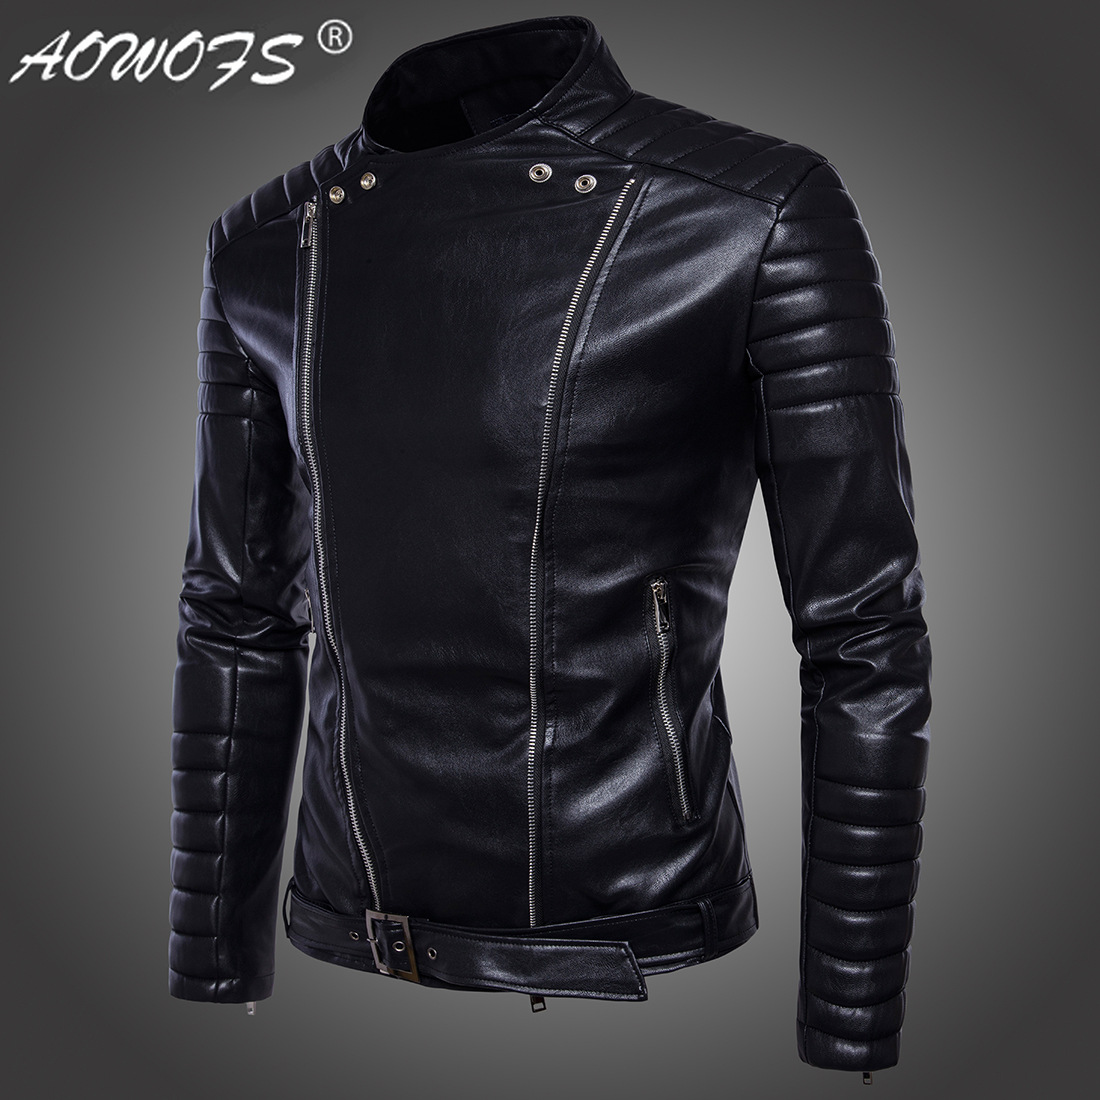 2019 European Code Men 39 s Motorcycle Leather Clothing High end Kali Motorcycle Jacket Men 39 s Fashion Personality Jacket in Faux Leather Coats from Men 39 s Clothing